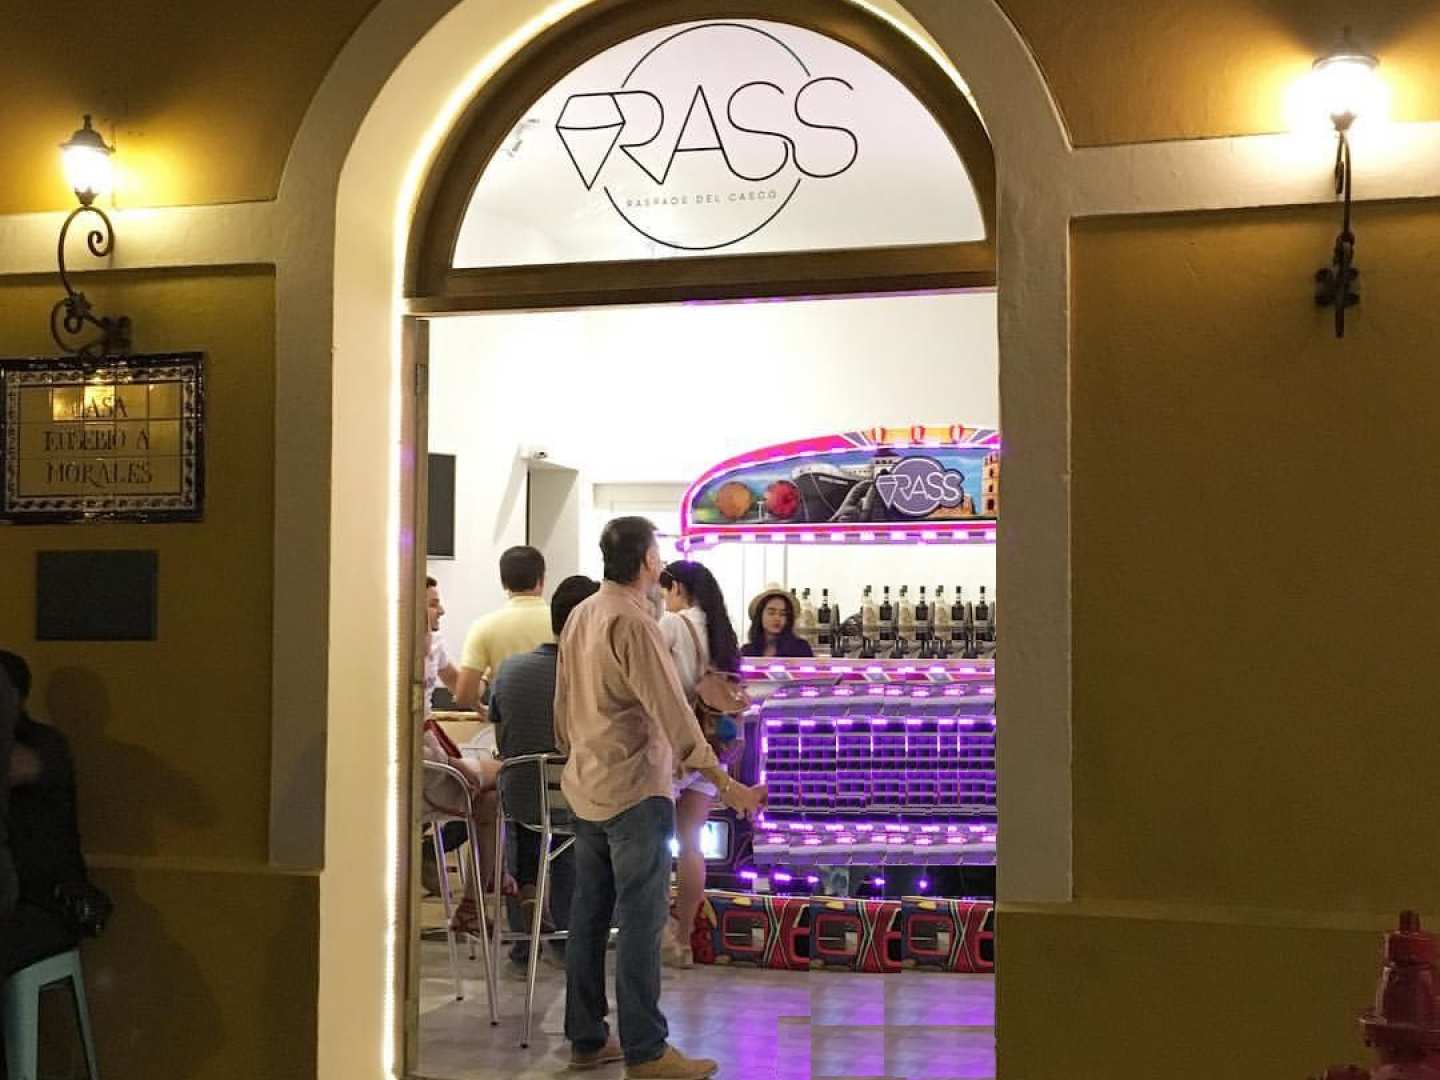 Rass (Casco Antiguo)